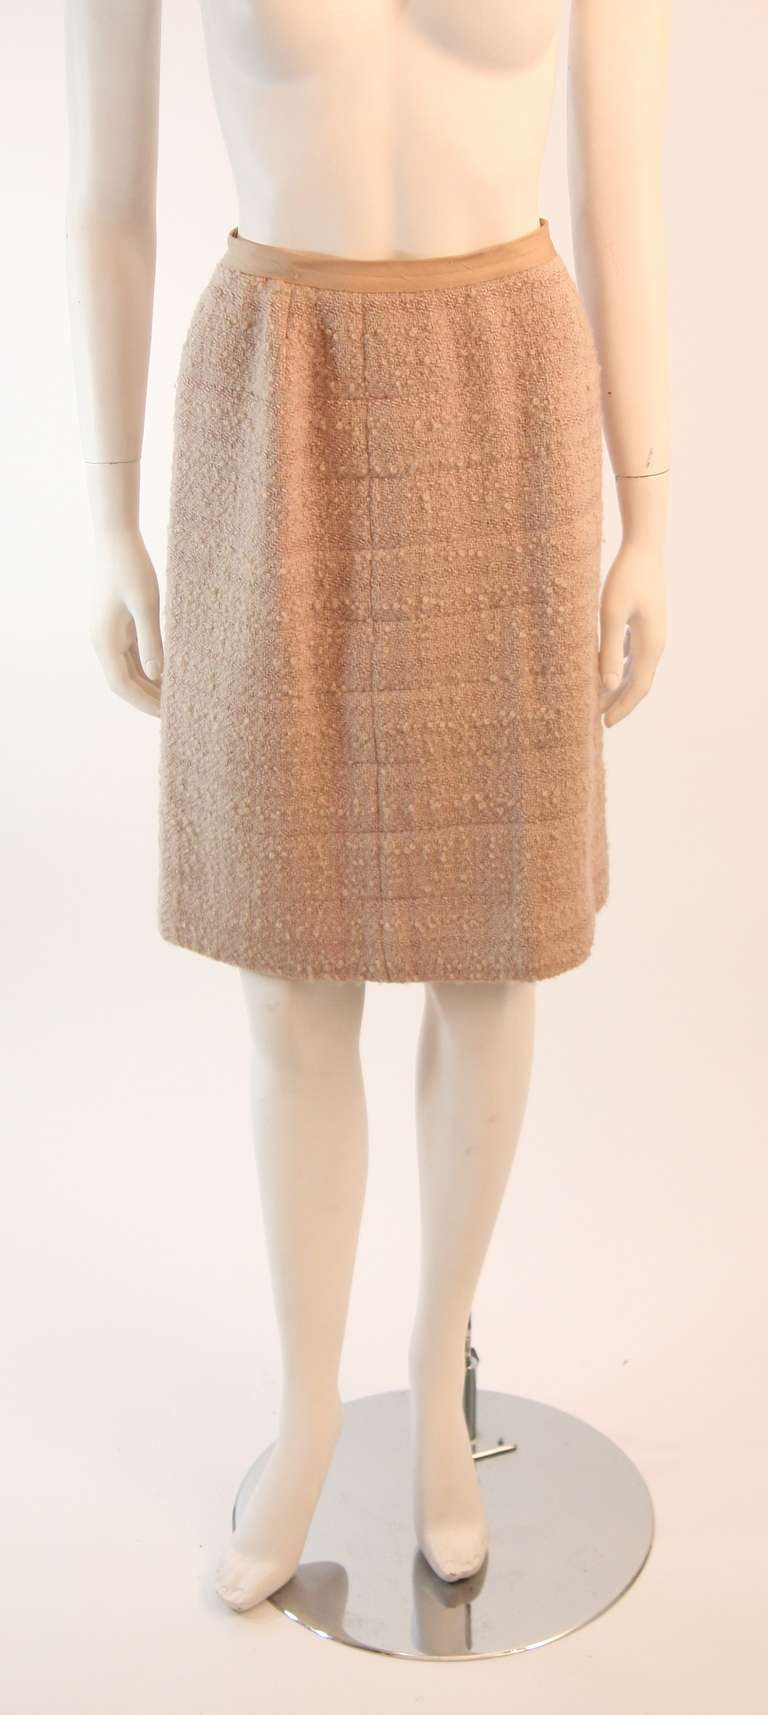 1960's Attributed to Chanel Couture Cream Boucle 3 Piece Tweed Suit 8